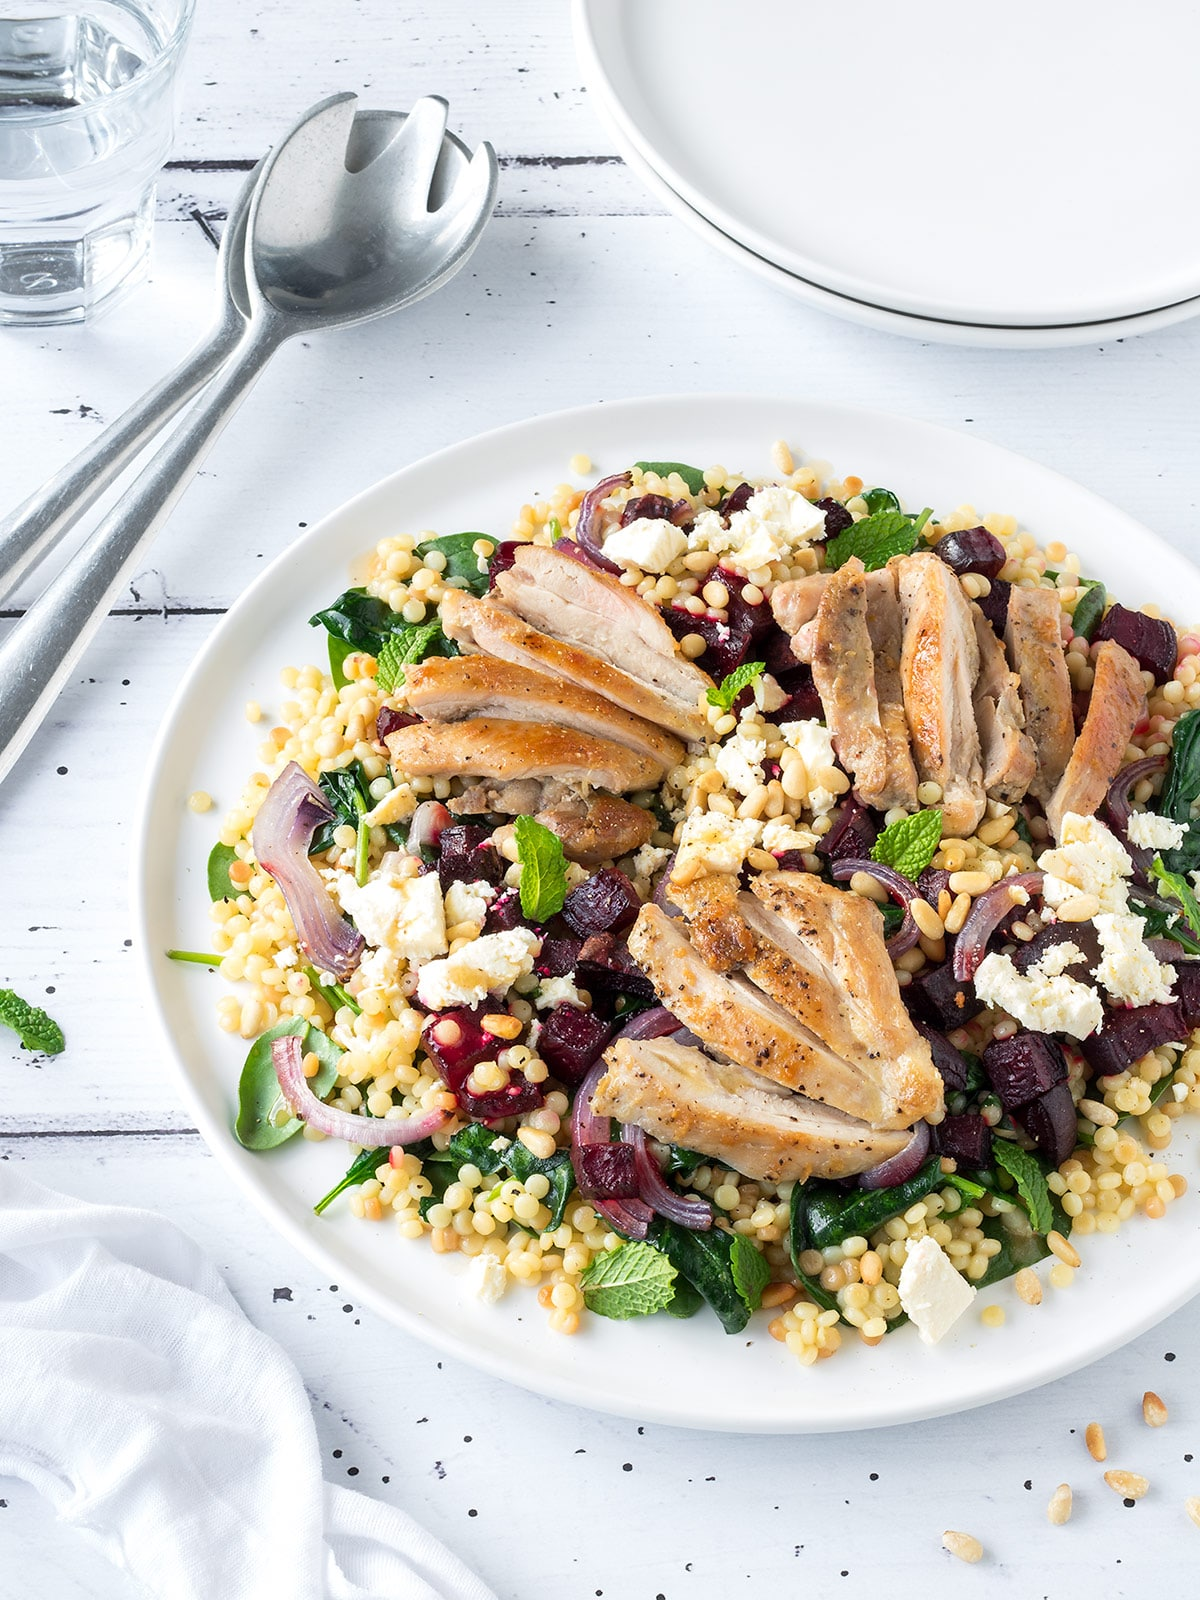 Plate of chicken, roasted beetroot and feta salad.